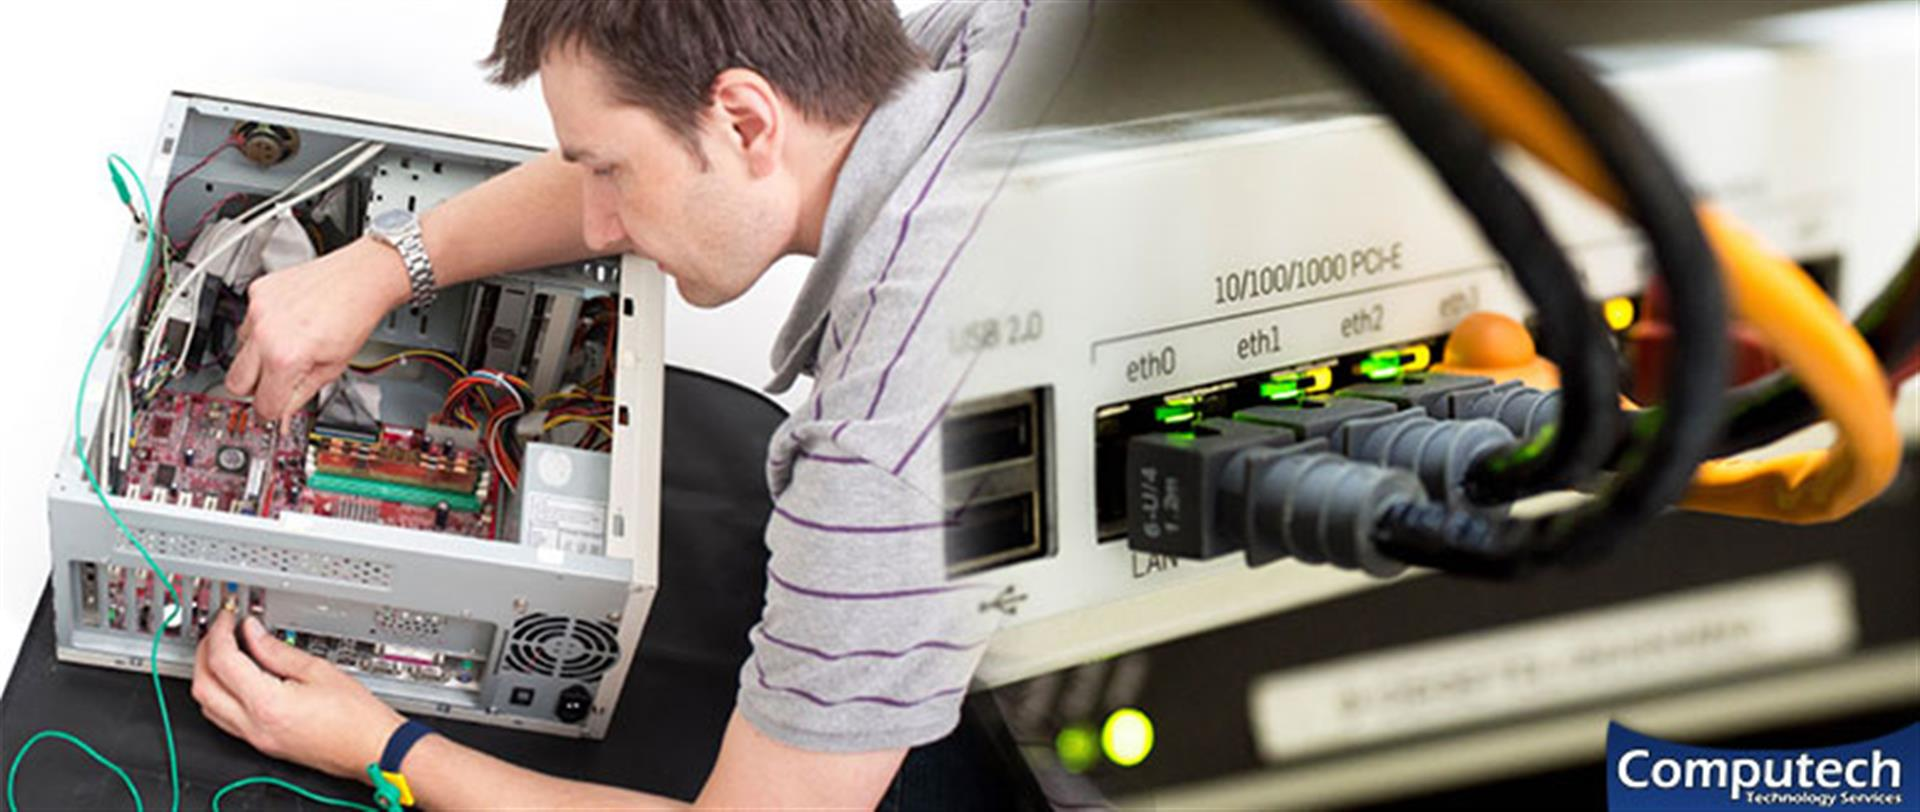 Greenville Alabama Onsite Computer PC & Printer Repair, Network, Telecom & Data Low Voltage Cabling Services